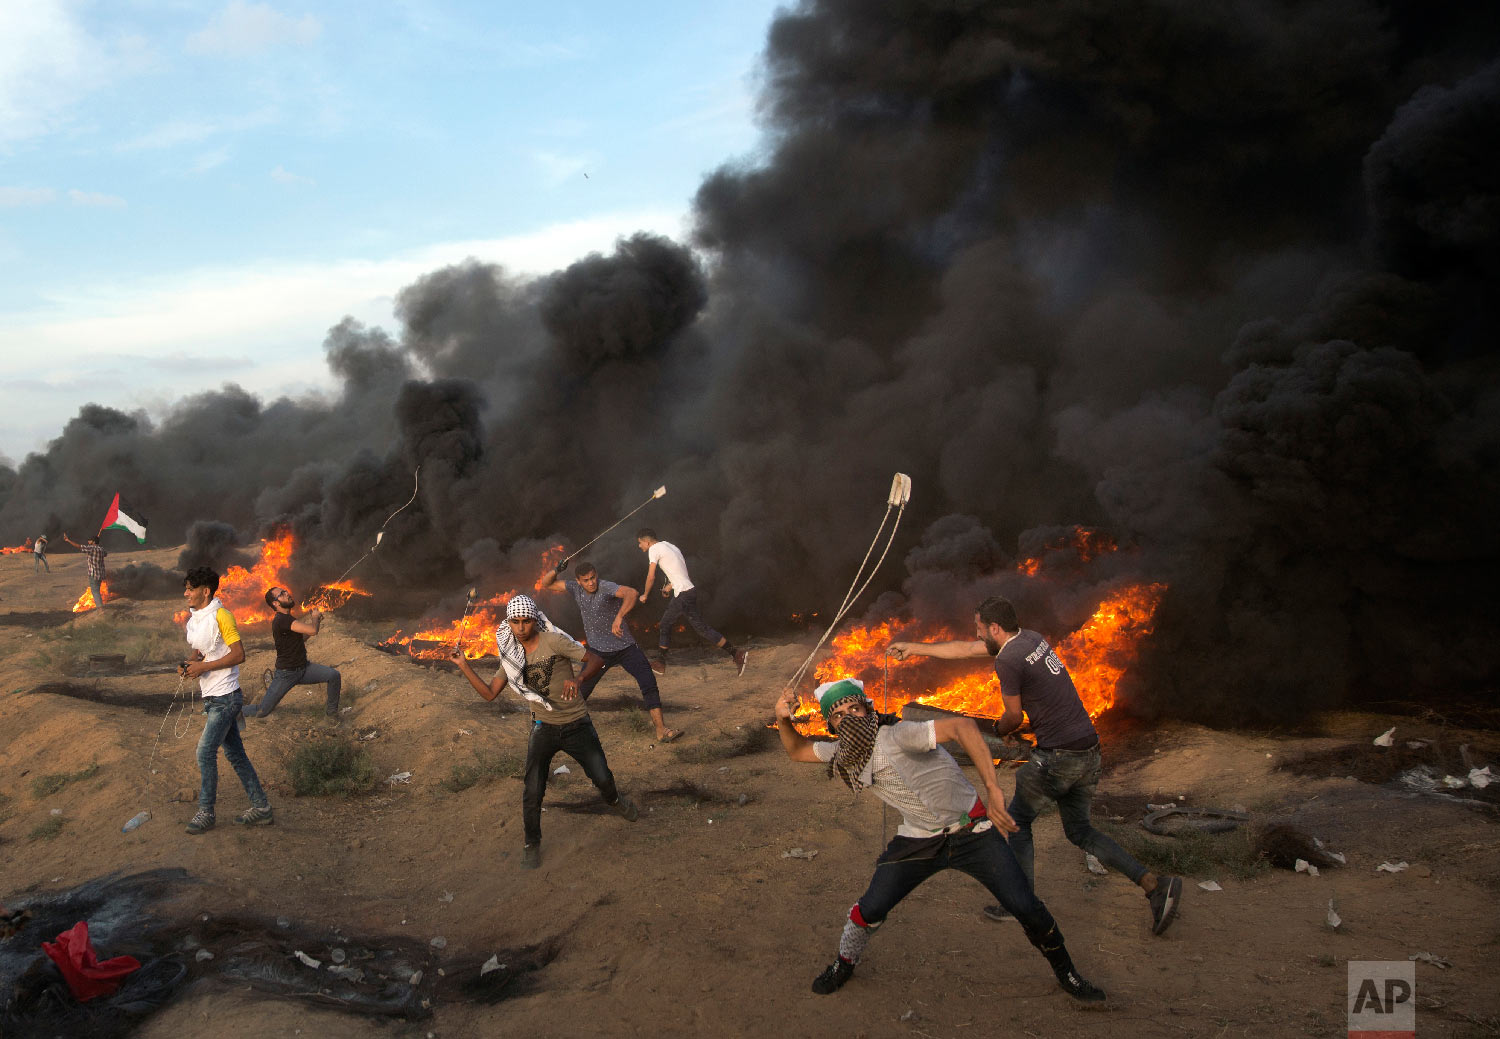 Palestinians hurl stones during a protest at the Gaza Strip's border with Israel on Oct. 5, 2018. (AP Photo/Khalil Hamra)